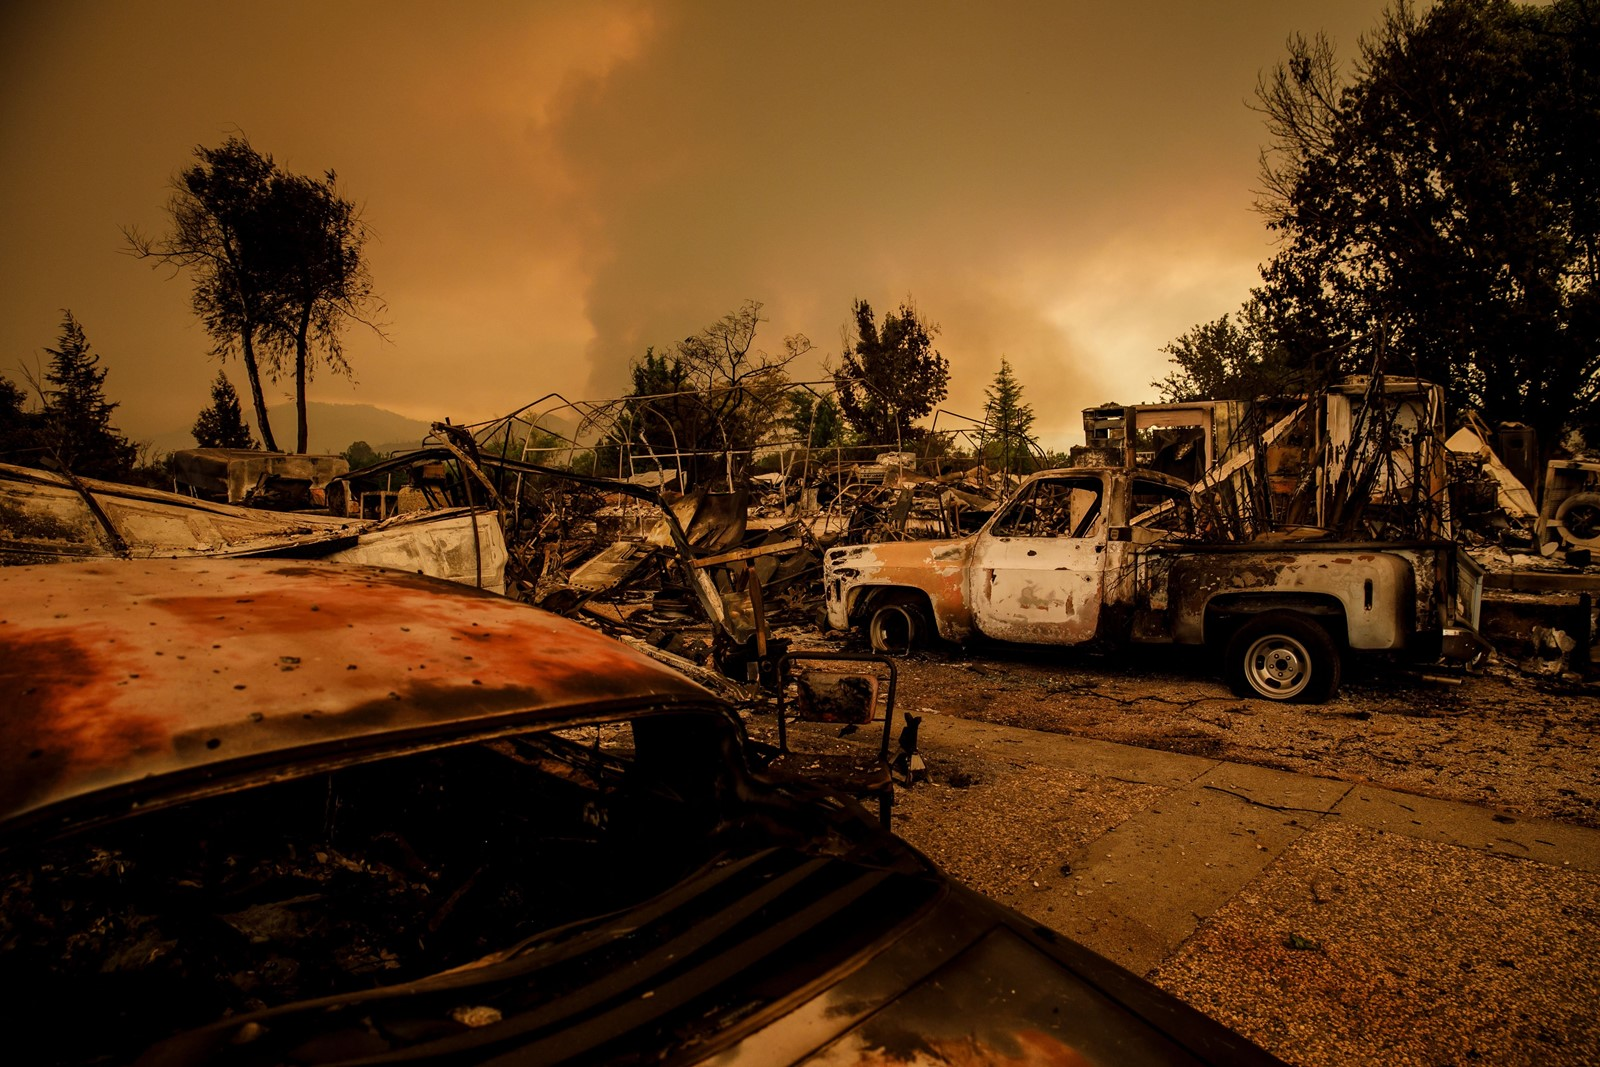 The Carr blaze is the most destructive of 17 major wildfires in the state. Authorities say they hope to gain more control of it as temperatures start to cool this week. — Photograph: Marcus Yam/Los Angeles Times.